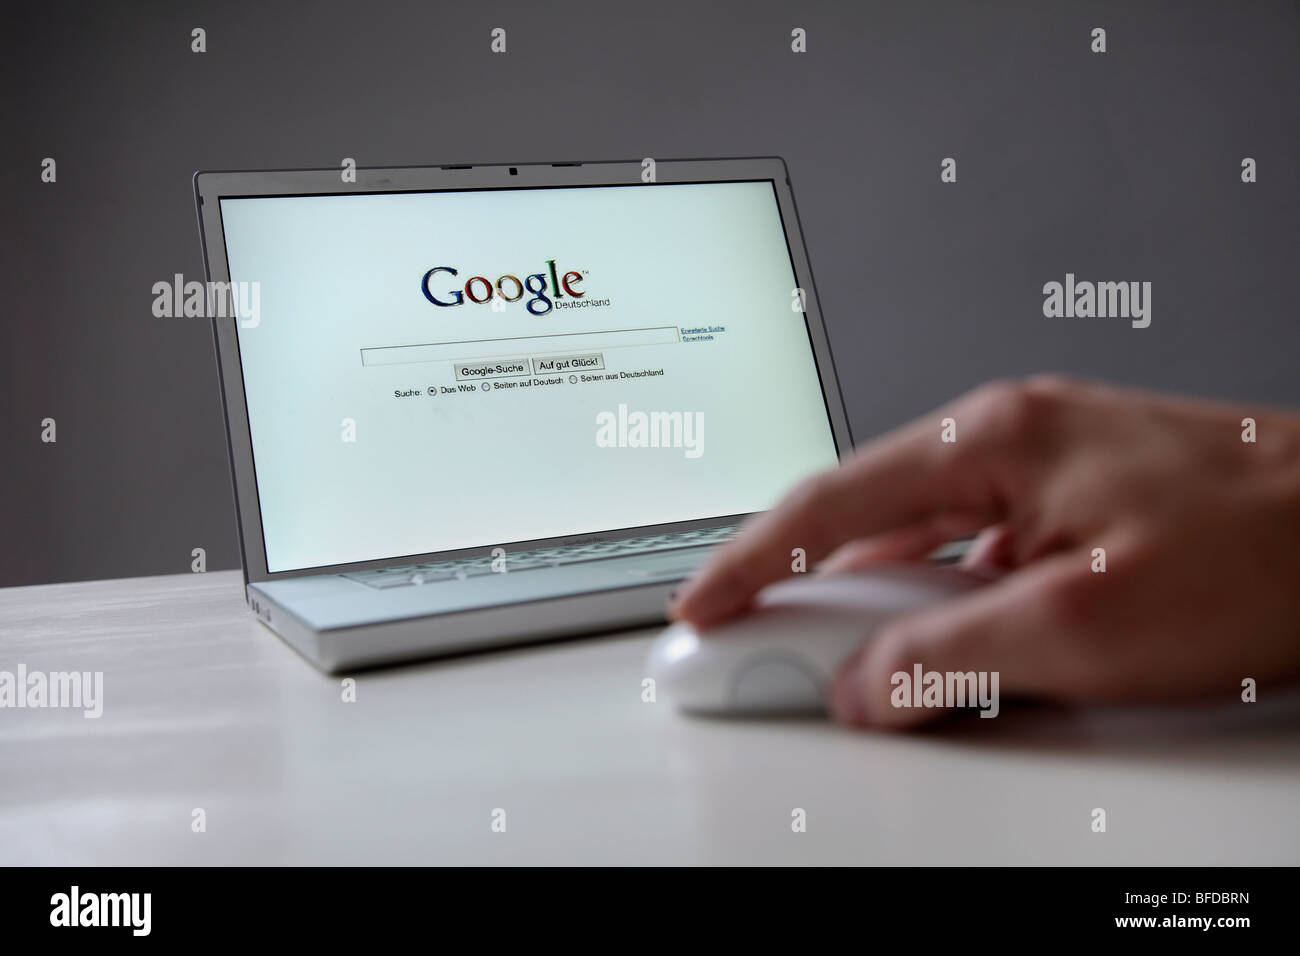 Google online search engine in the Internet - Stock Image